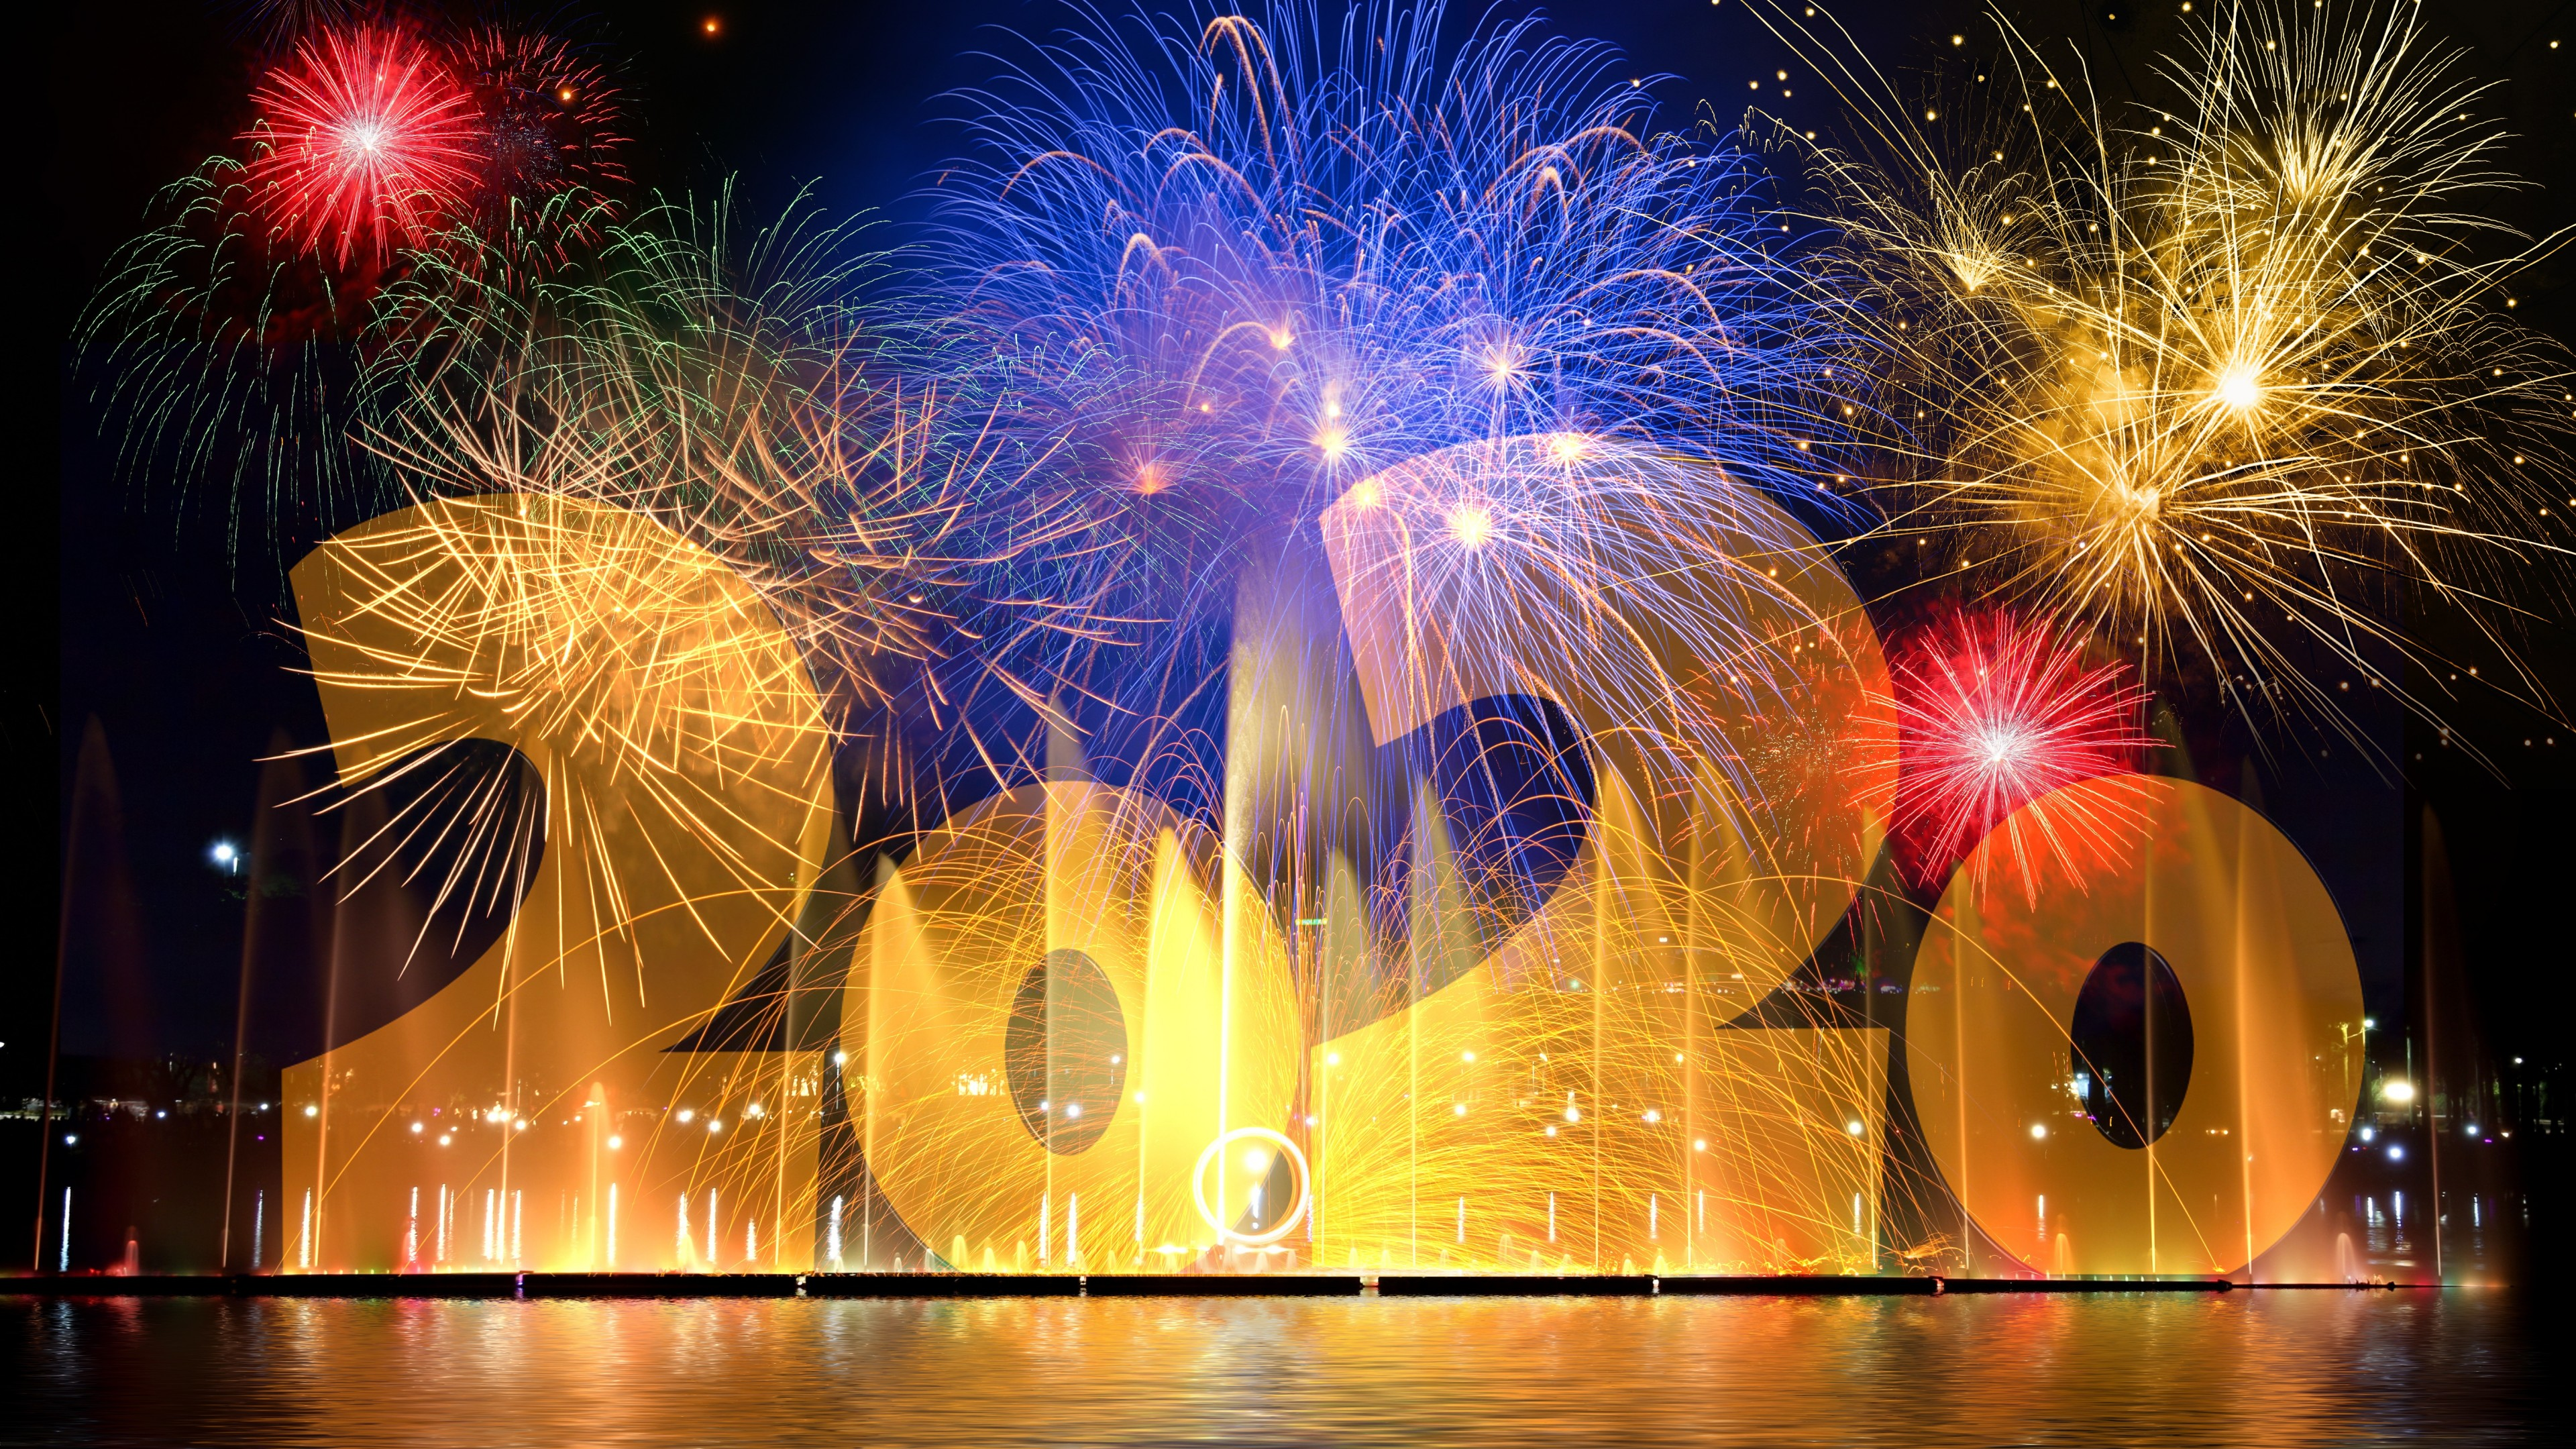 2020 New Year Eve Fireworks Celebration Background